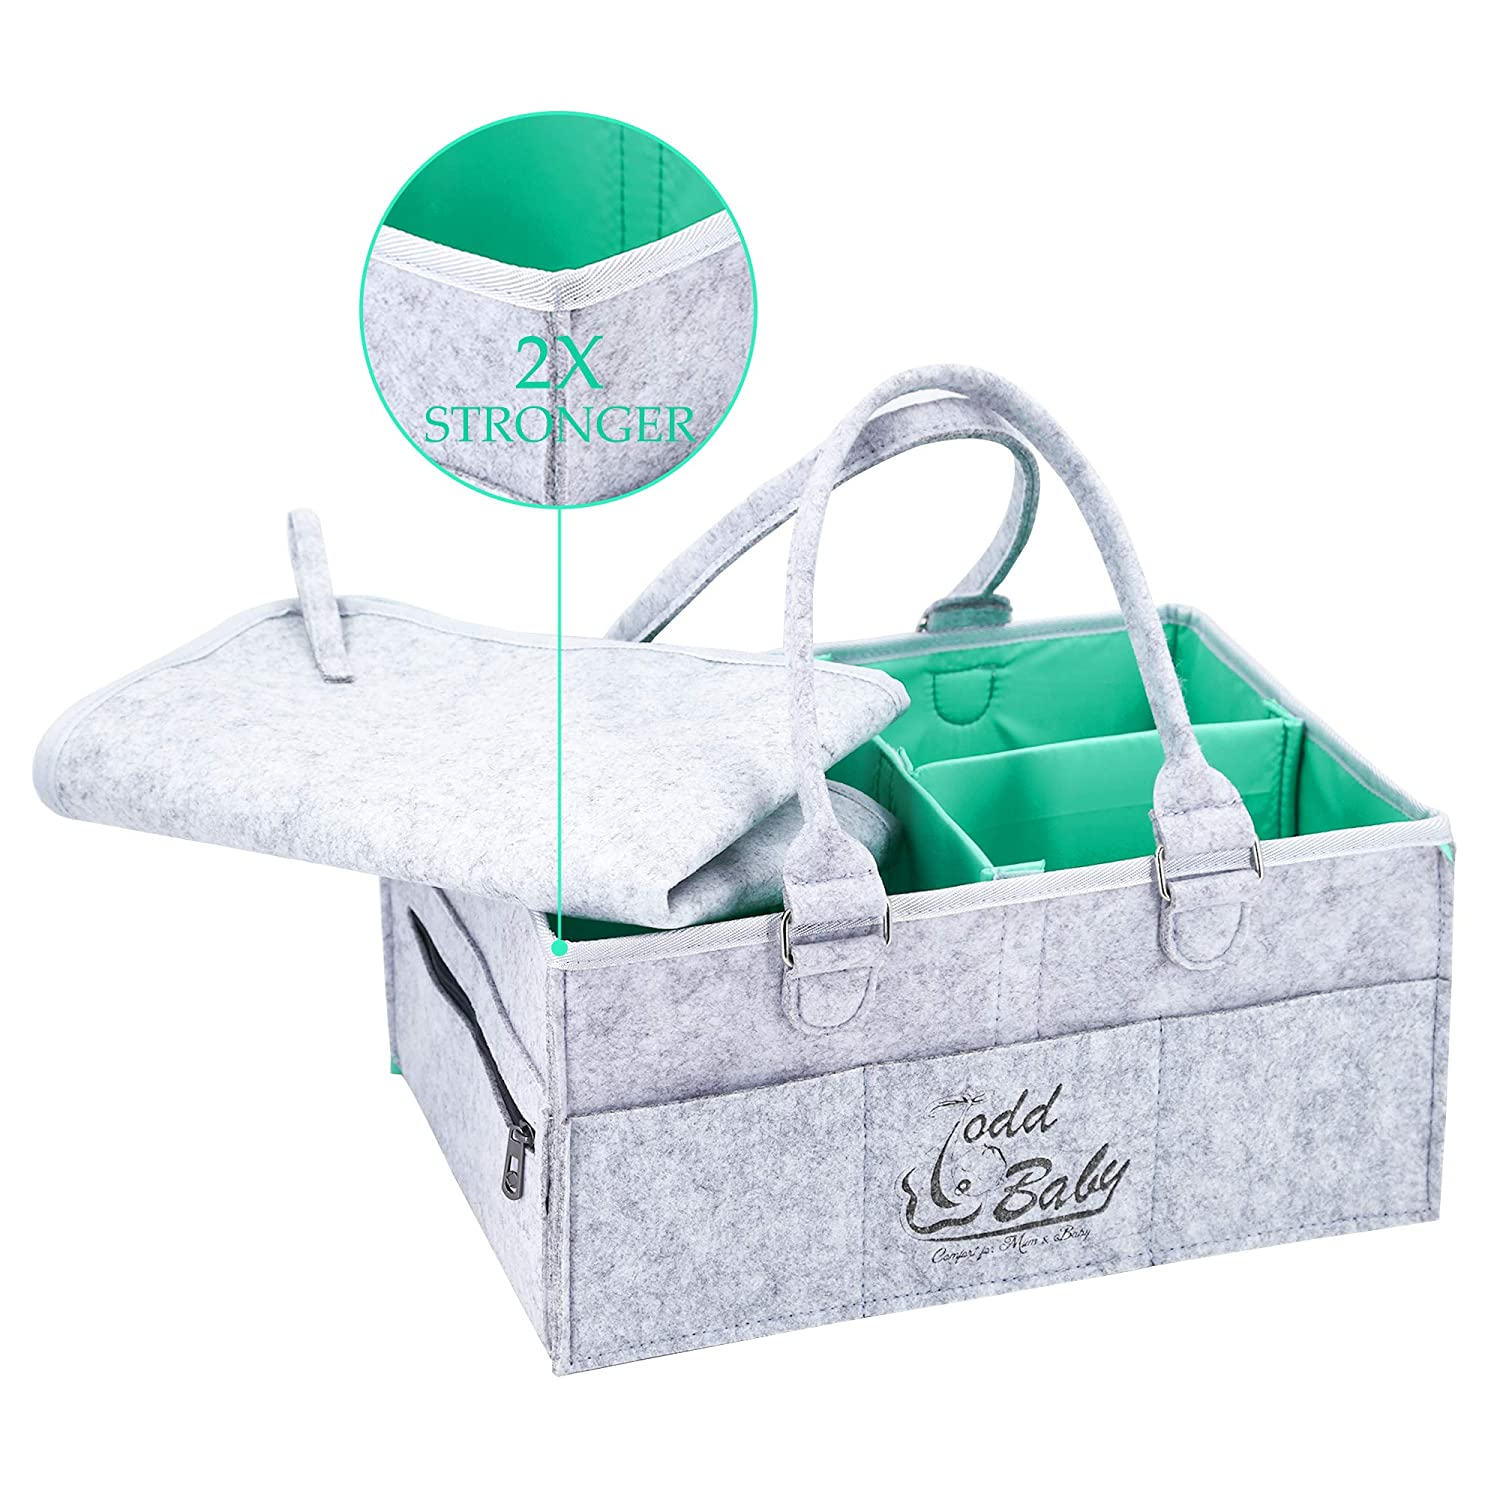 Baby Diaper Caddy Organizer Changing Mat Set Waterproof | Nursery Storage Bin for Wipes, Lotions,Toys | Portable Car Storage Basket | Changing Table Organizer | Baby Registry Gift Basket (Turquoise) Todd Linens